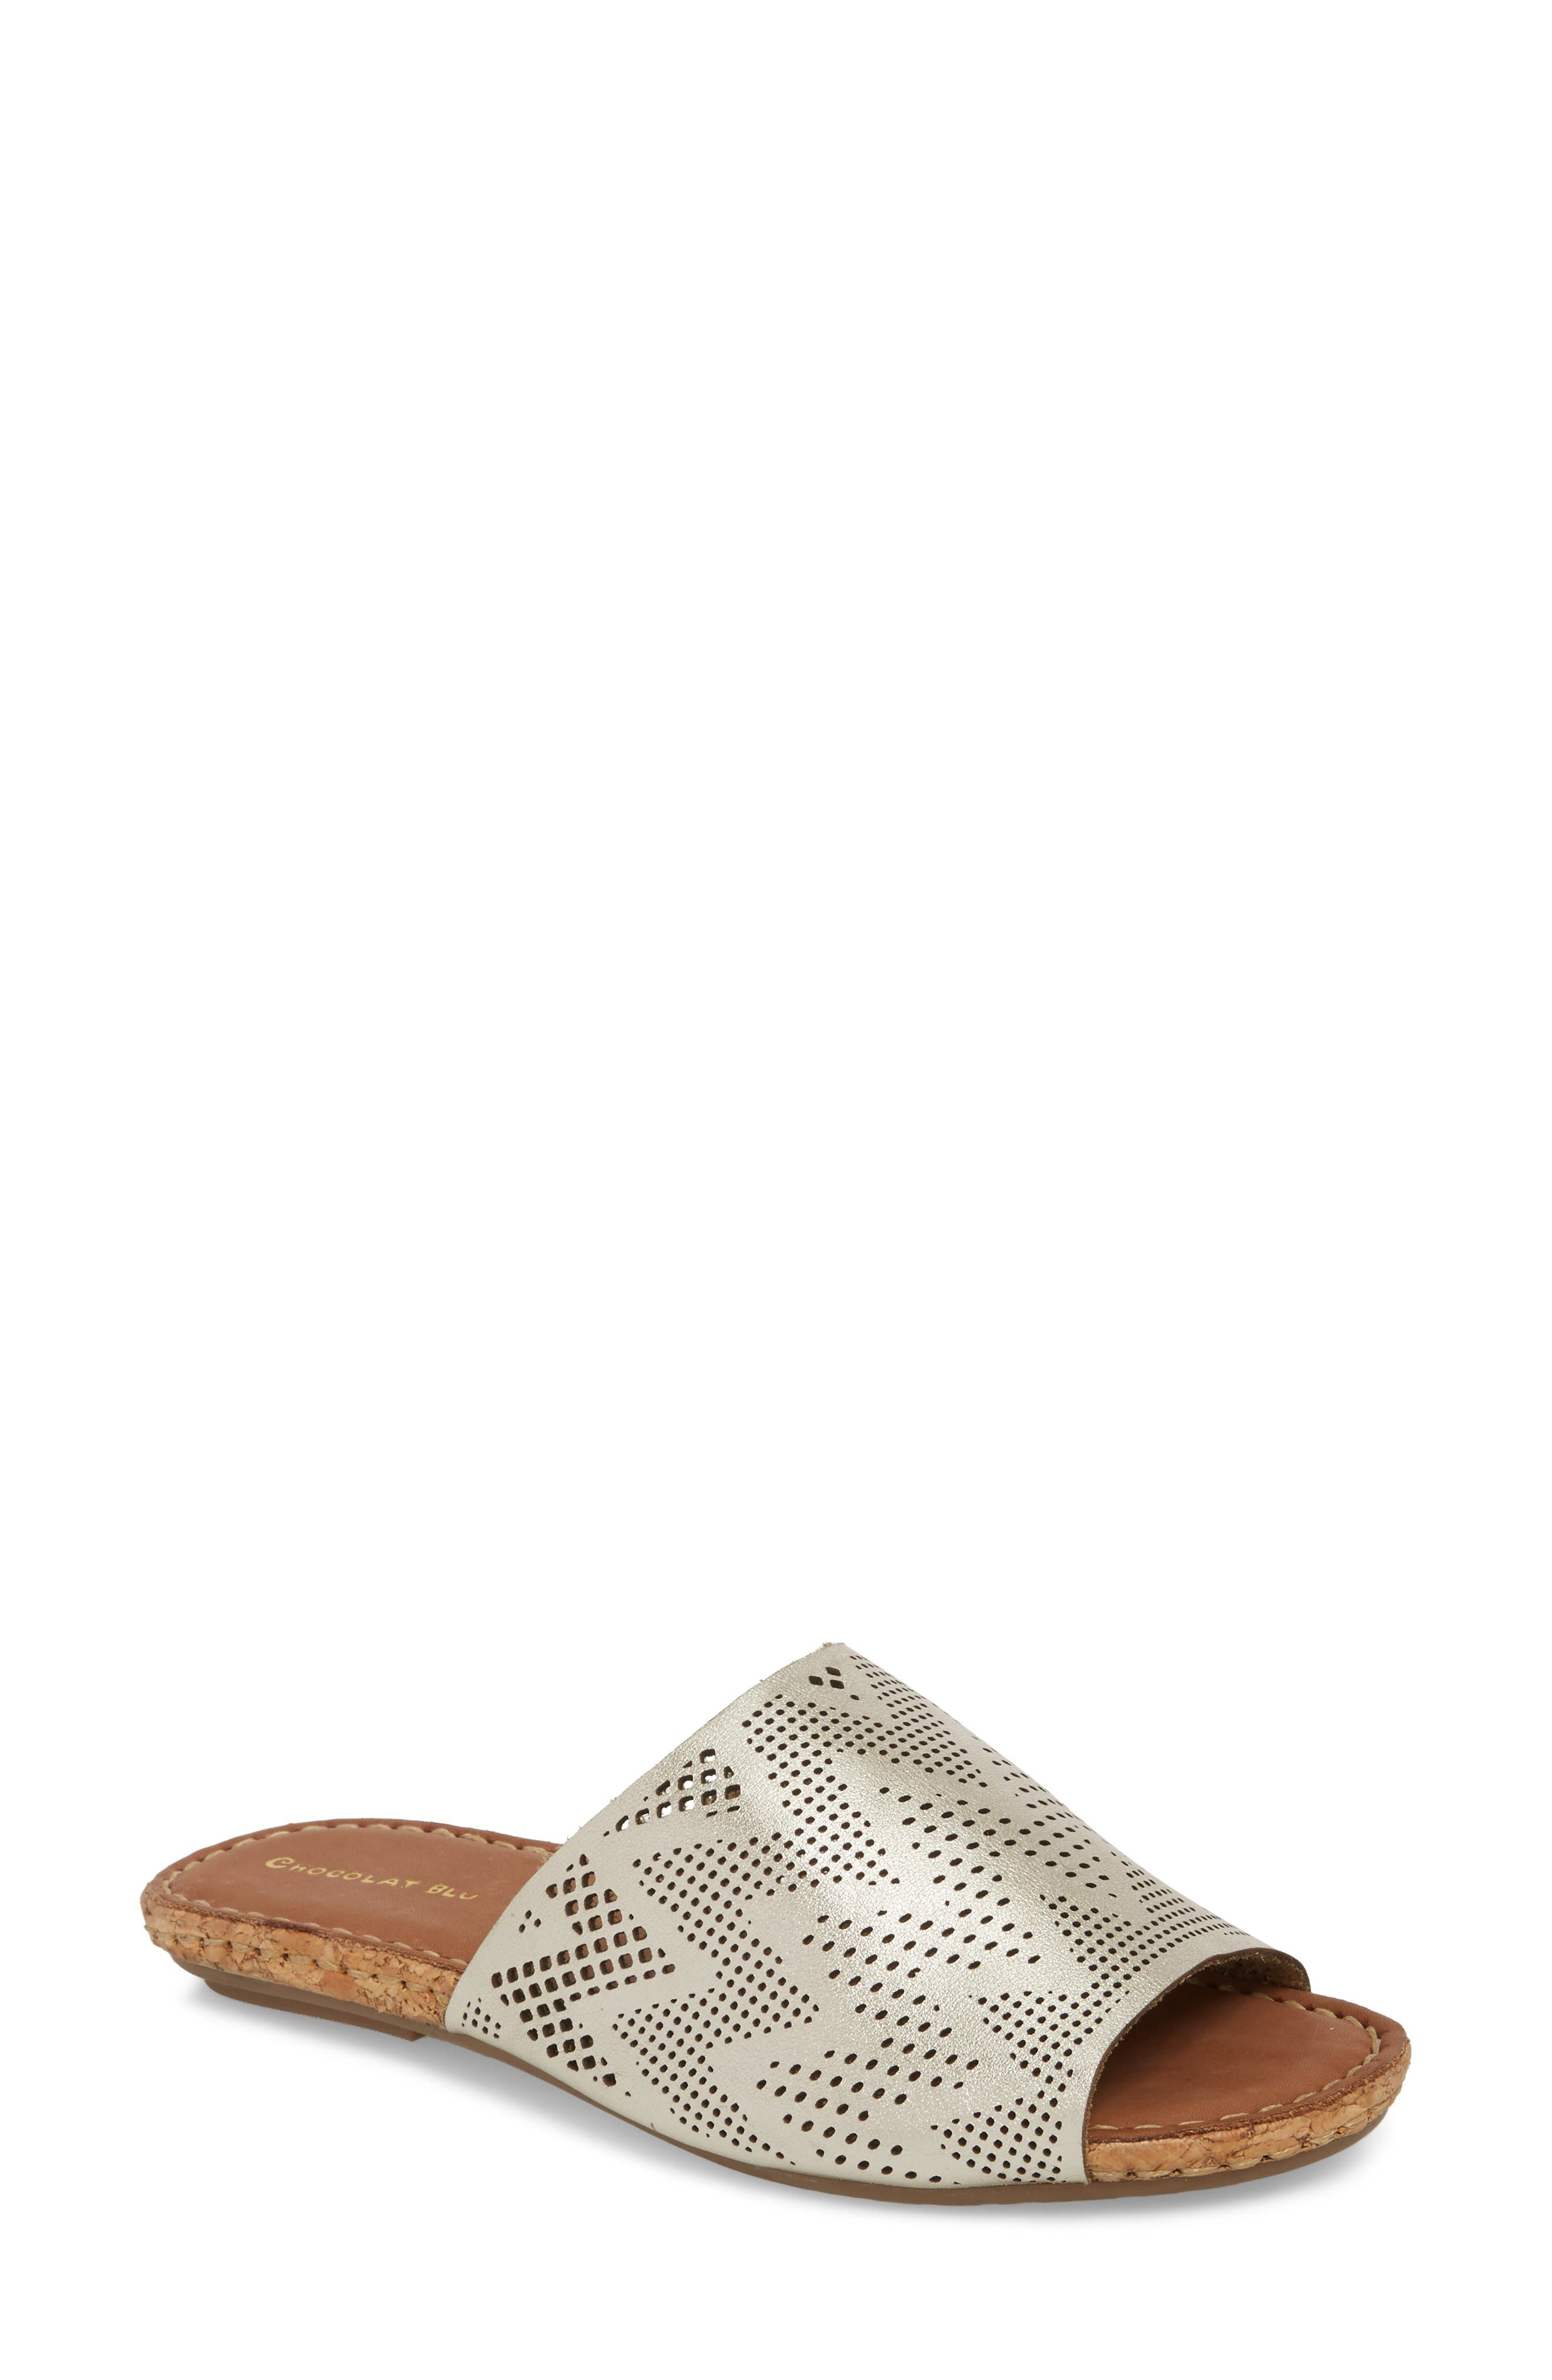 Bruno Slide Sandal,                         Main,                         color, Gold Leather